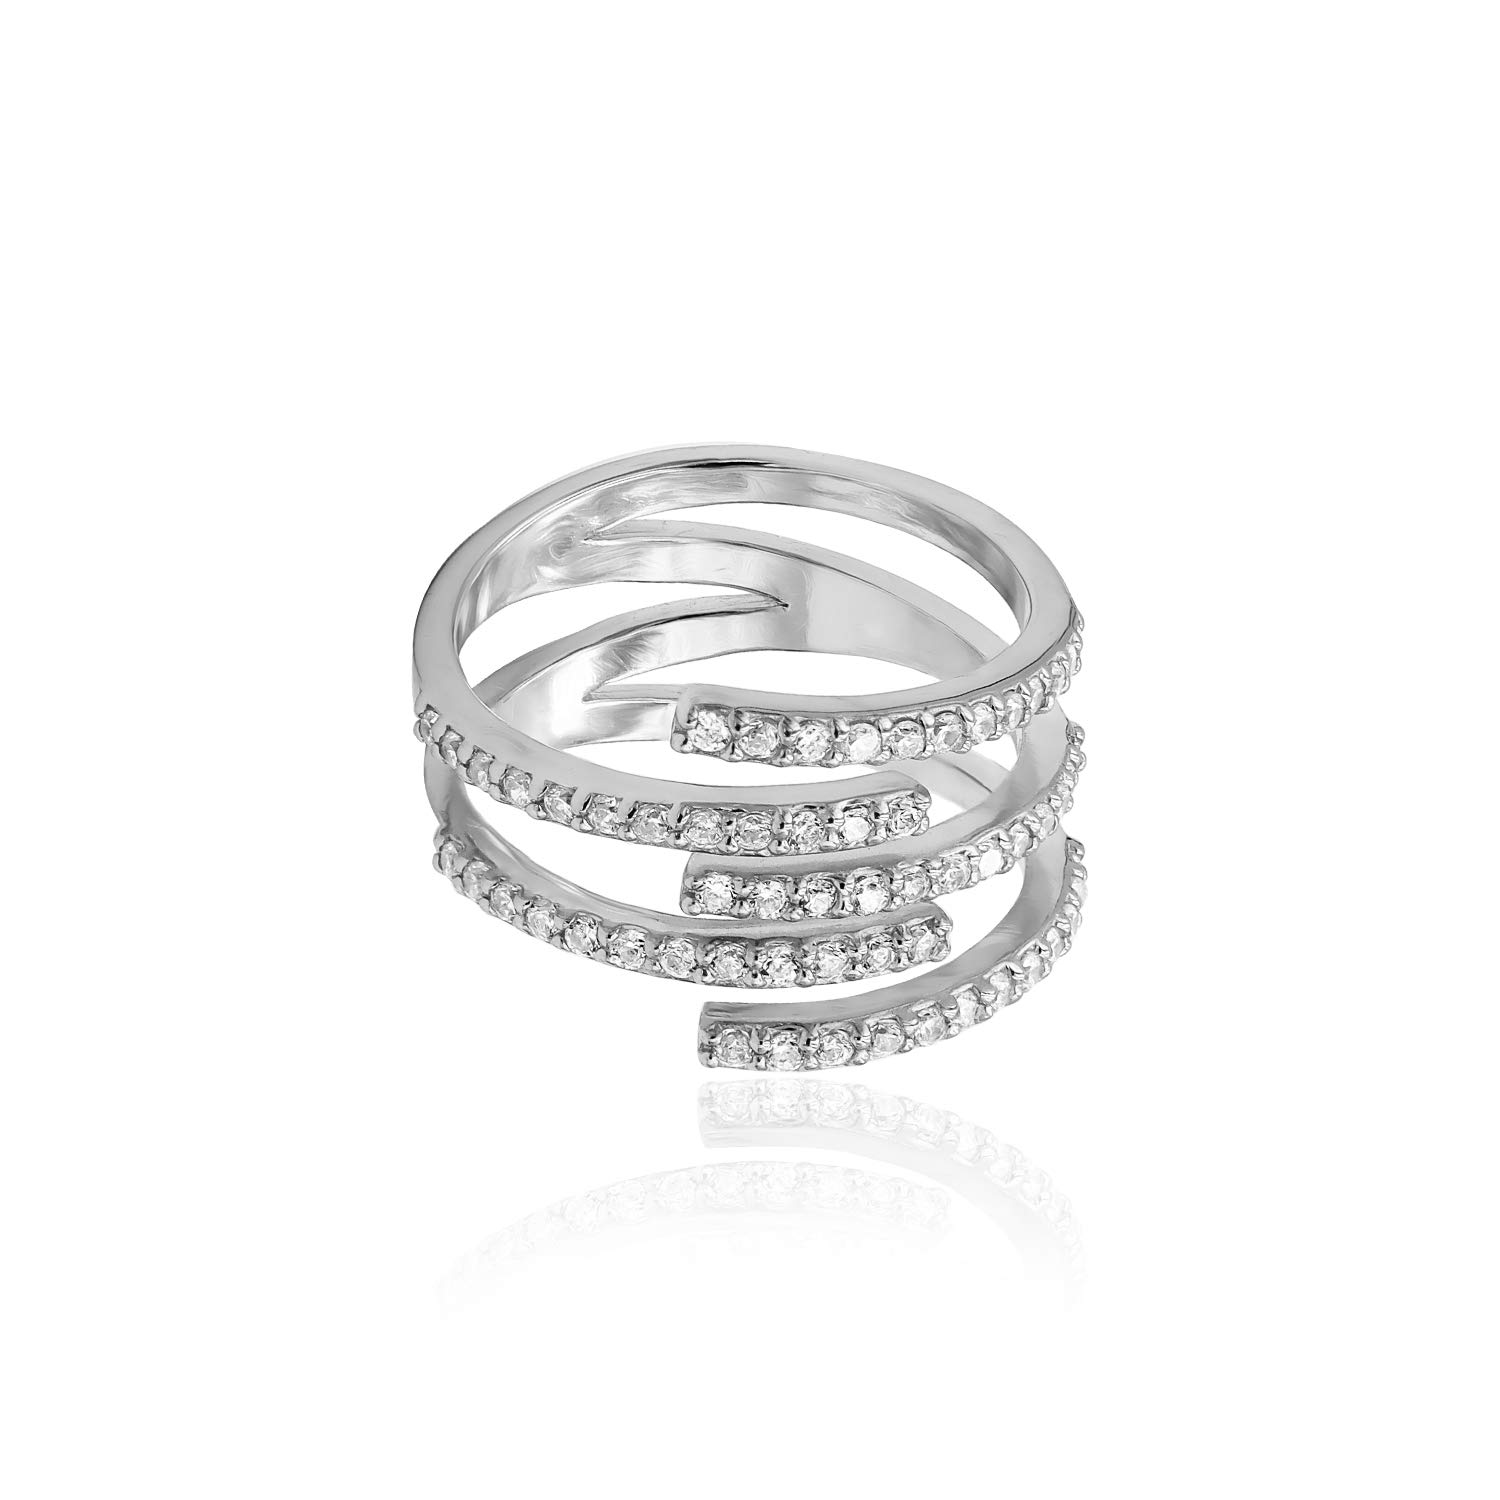 Sterling Silver CZ Cubic Zirconia Spiral Statement Ring, Size 7